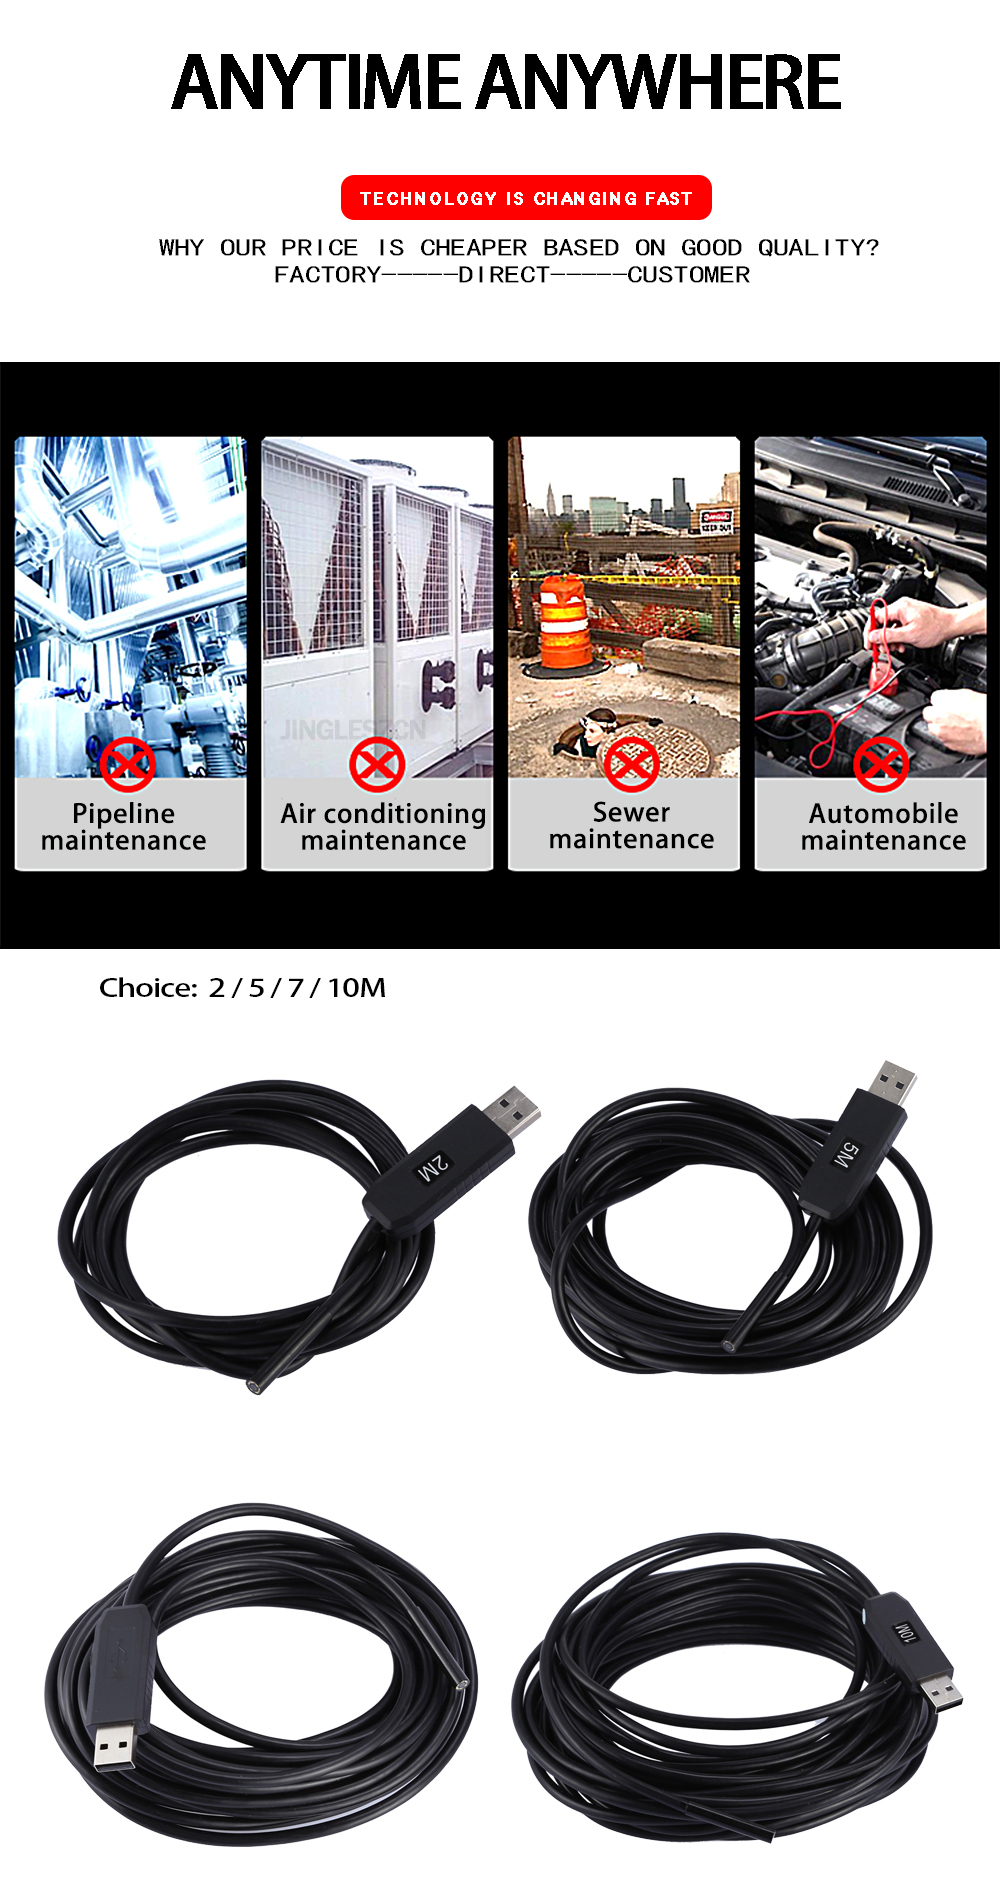 4710bf585d9 ᐂJINGLESZCN USB Endoscope Mini Camera 5.5mm Dia 7m Length ...